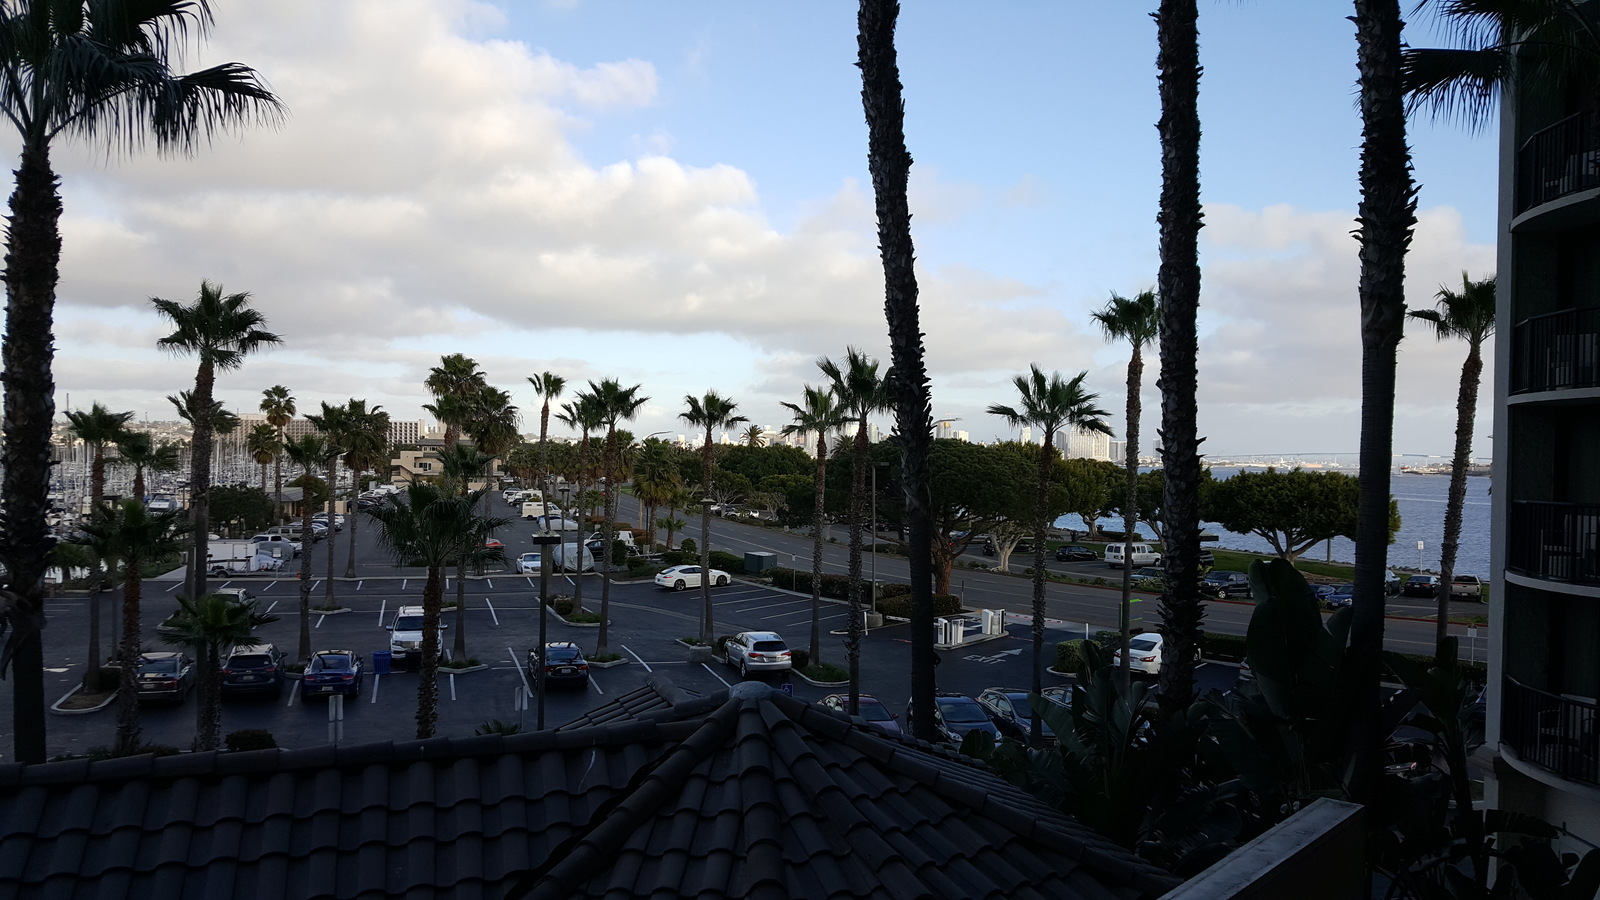 Hotels Near San Diego Airport With Shuttle Service